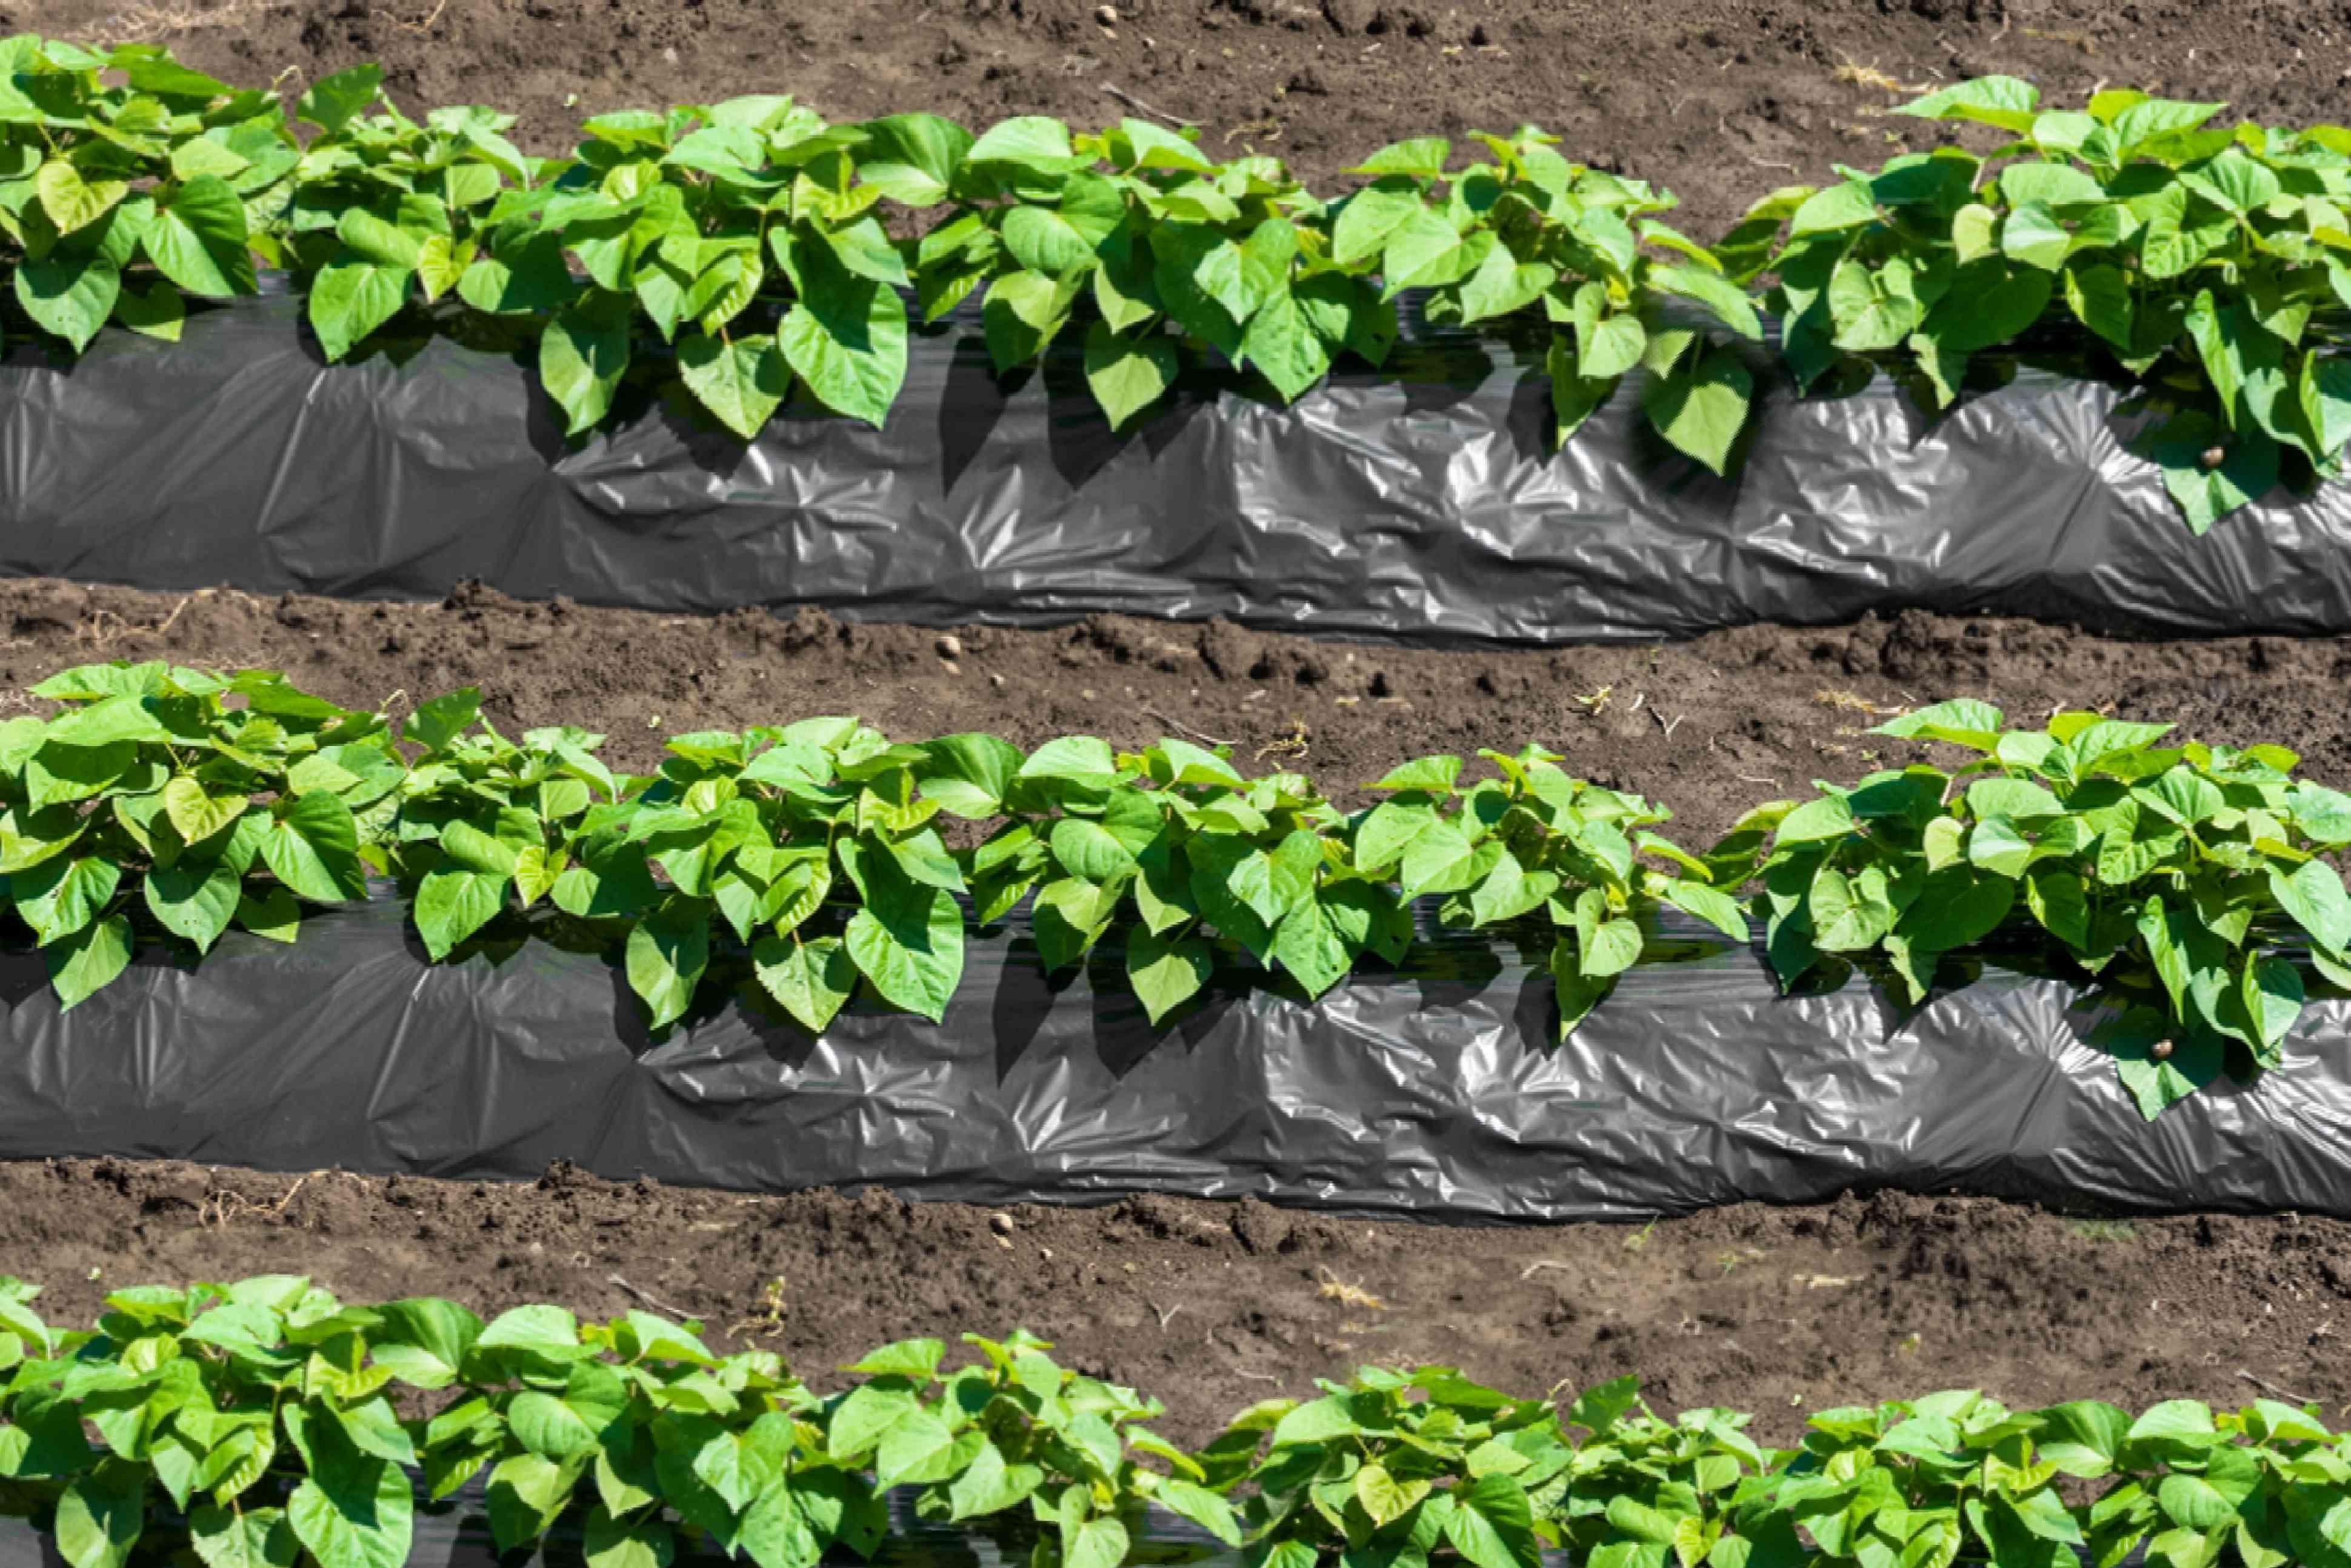 three rows of sweet potato slips being grown in garden with black tarp covering